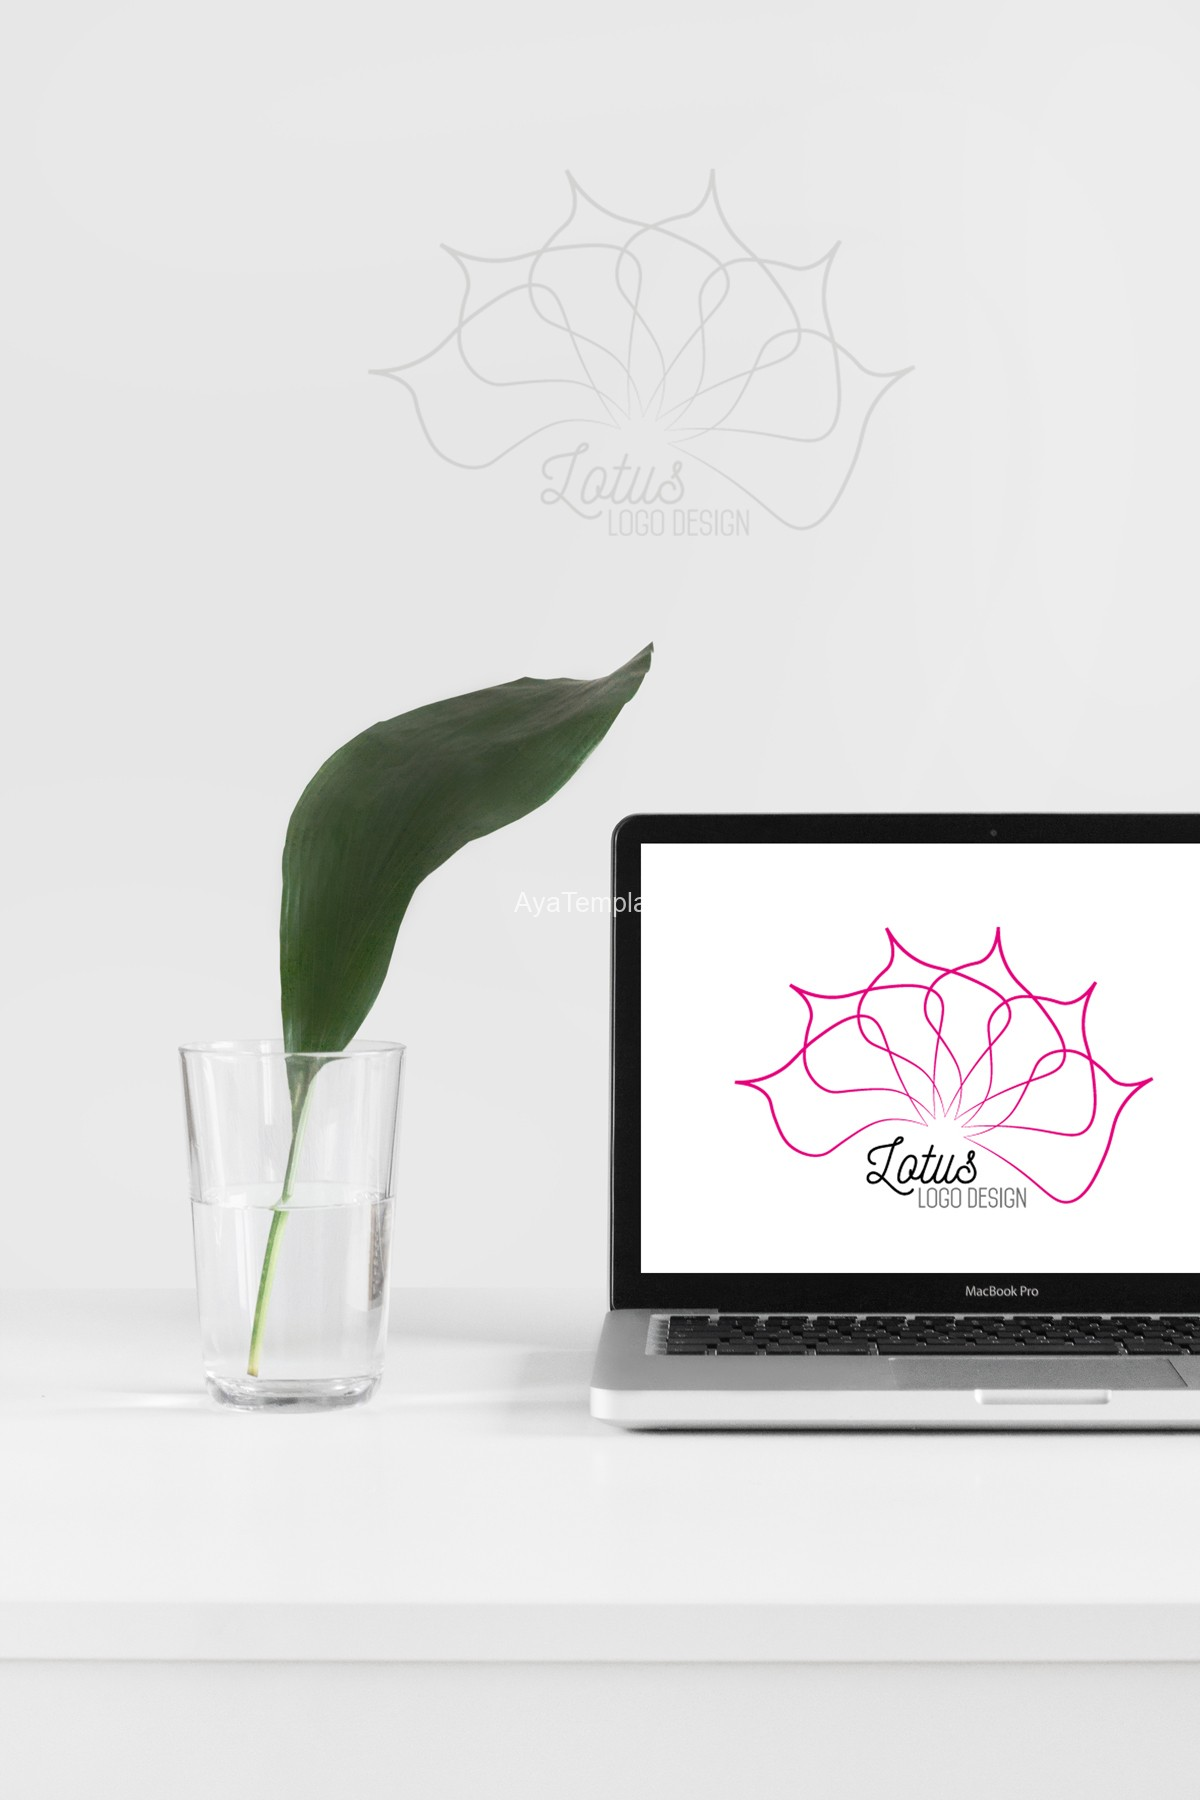 lotus-logo-and-brand-identity-design-mockup